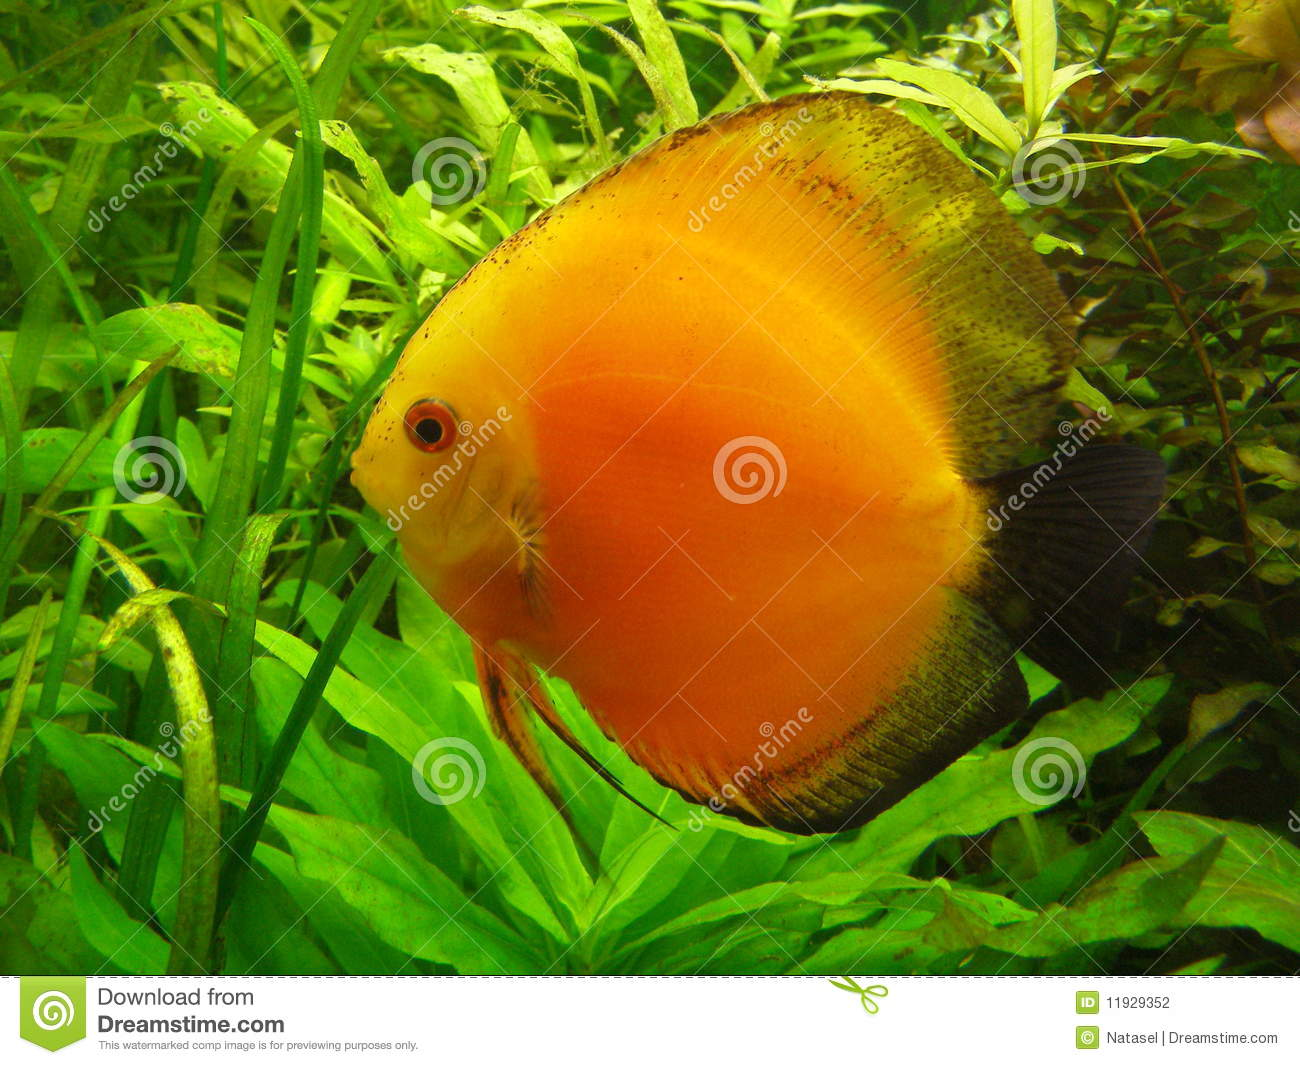 Orange diskus in an aquarium stock photo image 11929352 for Diskus aquarium